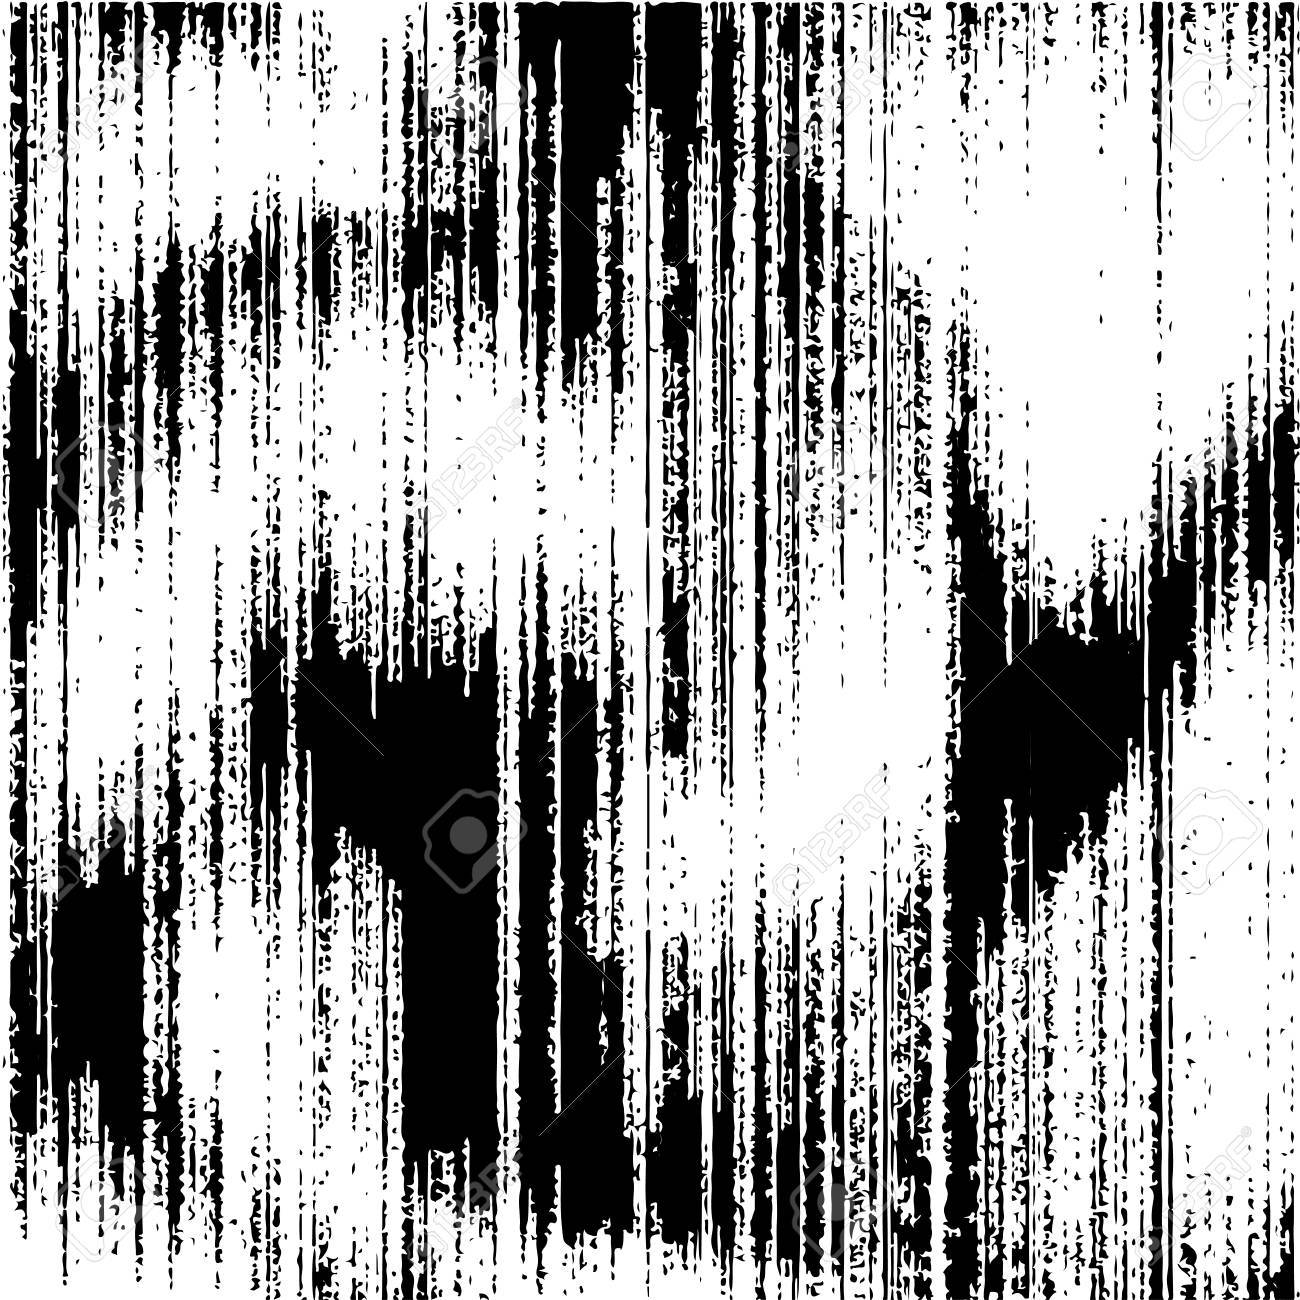 Grunge Backgrounds in black and white  Grunge texture with lines,